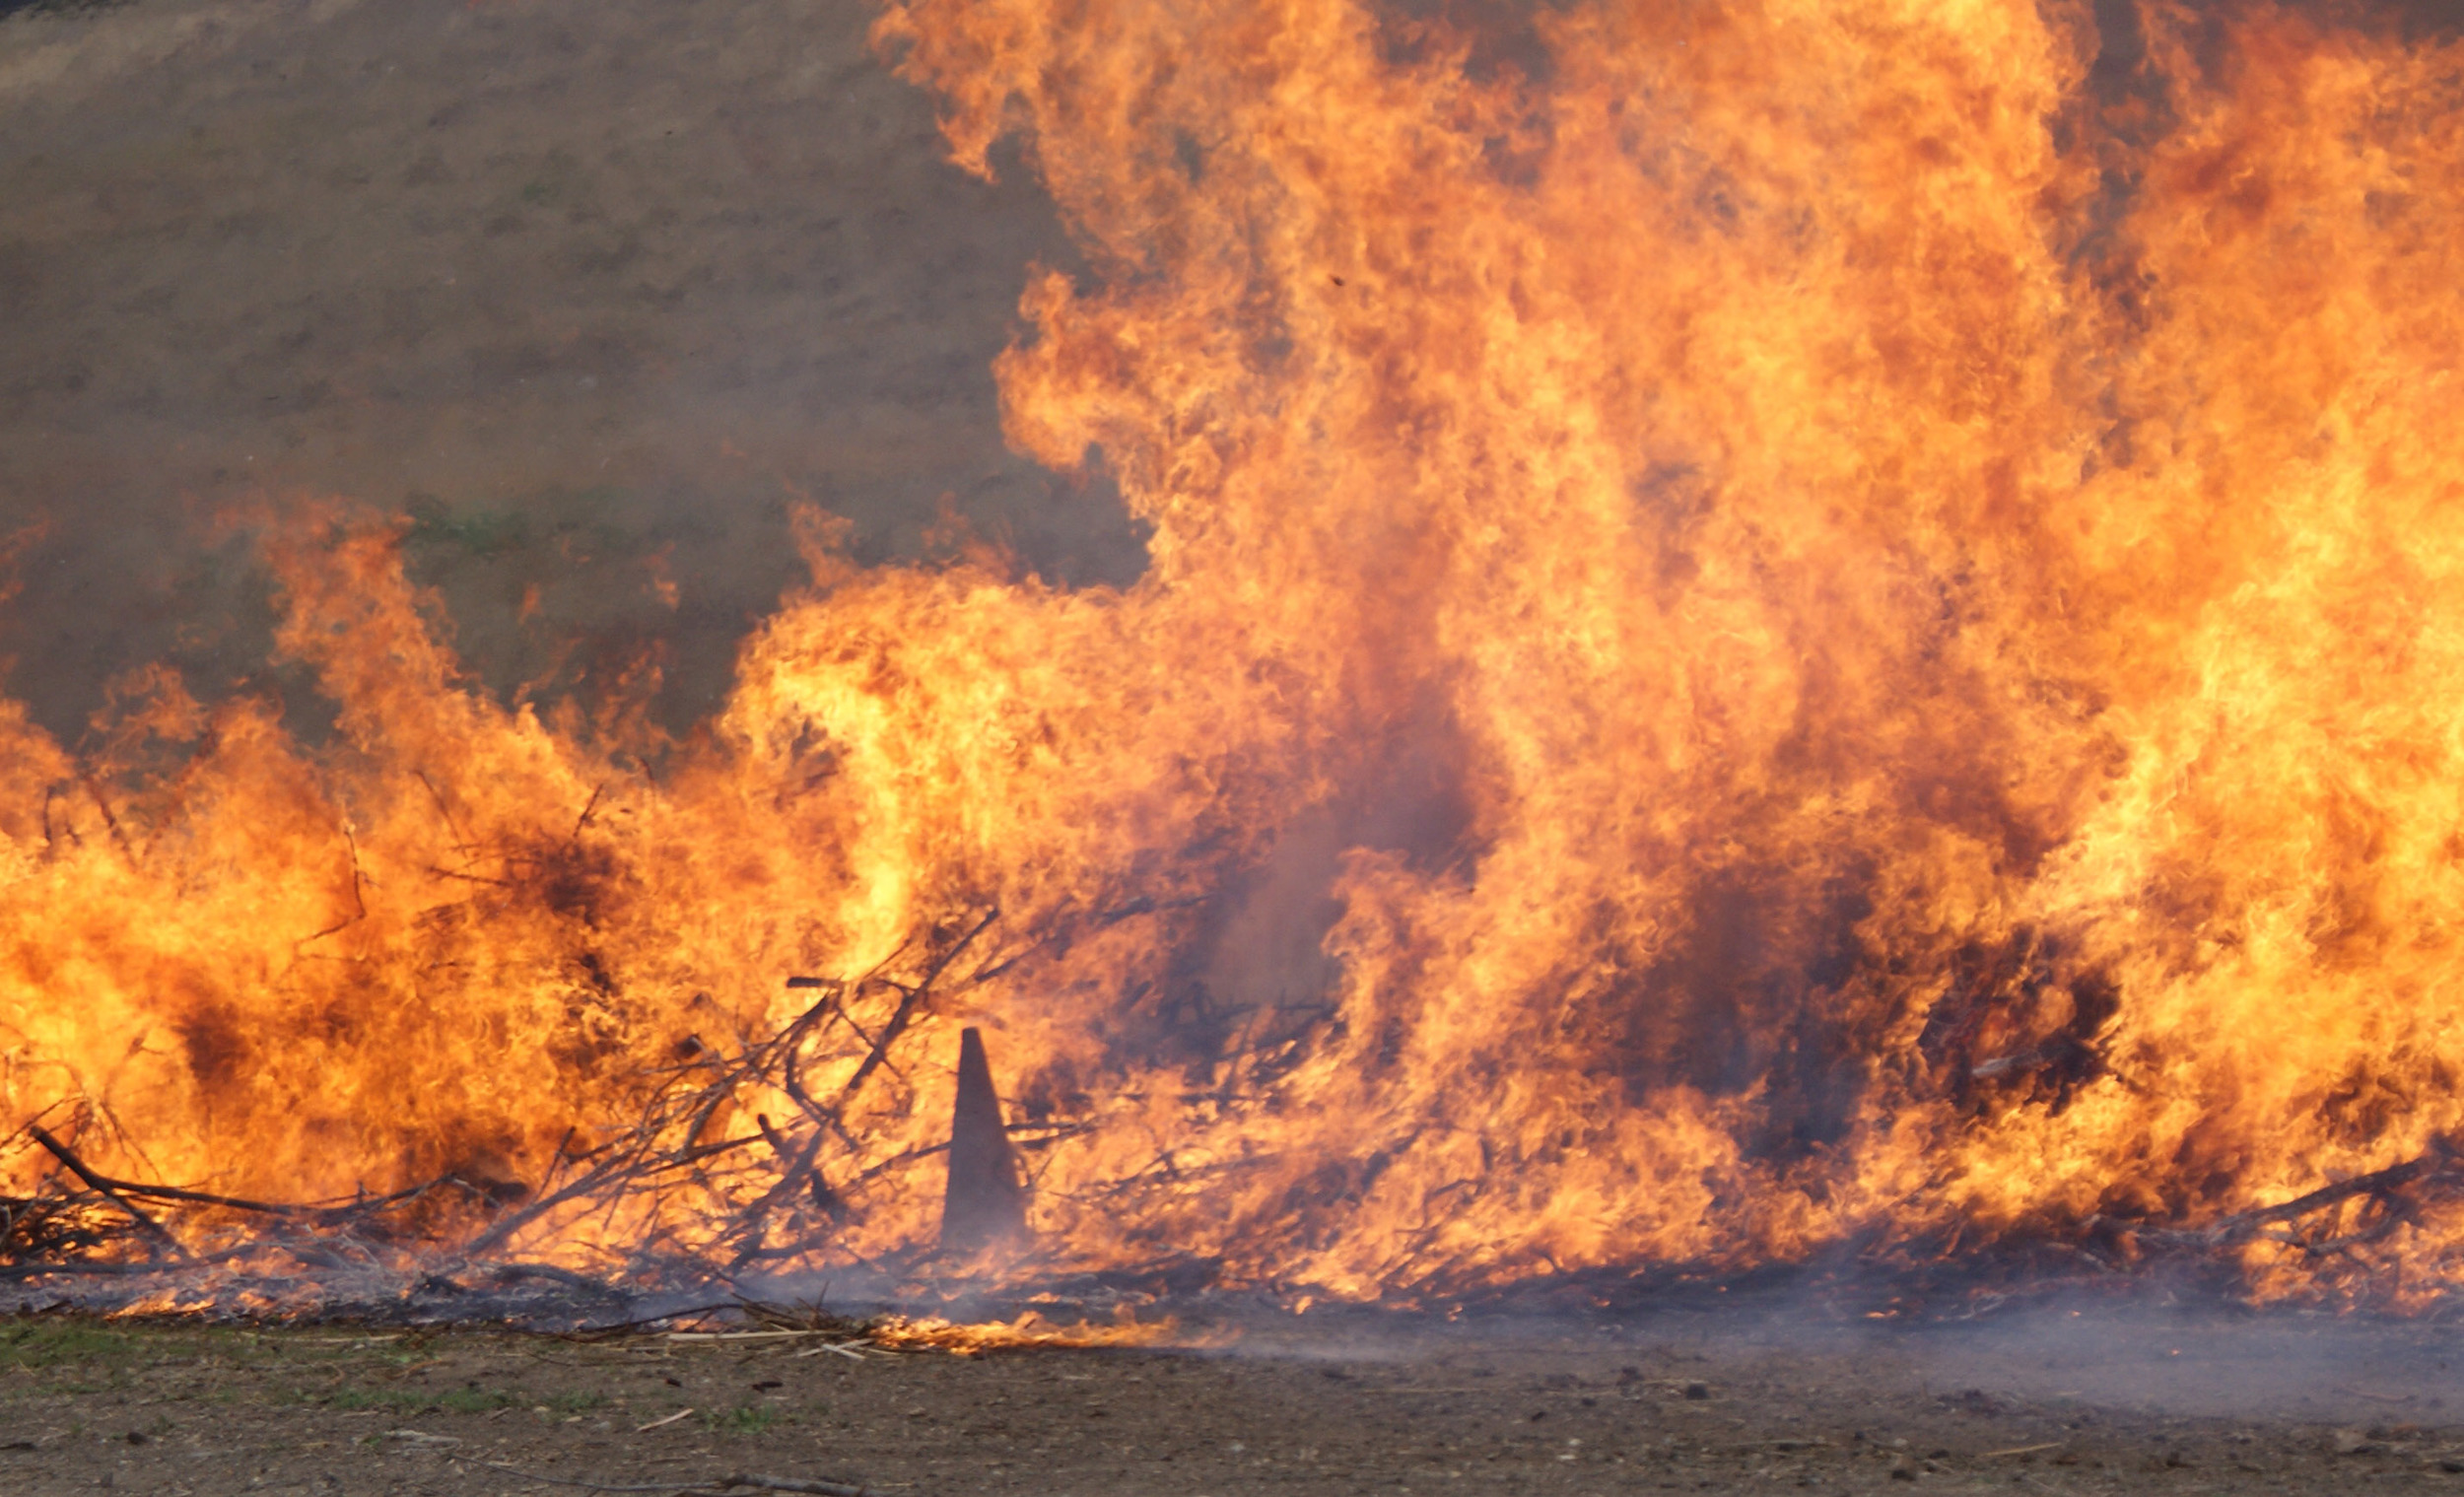 Ritual Firing with Ventura County Fire Department